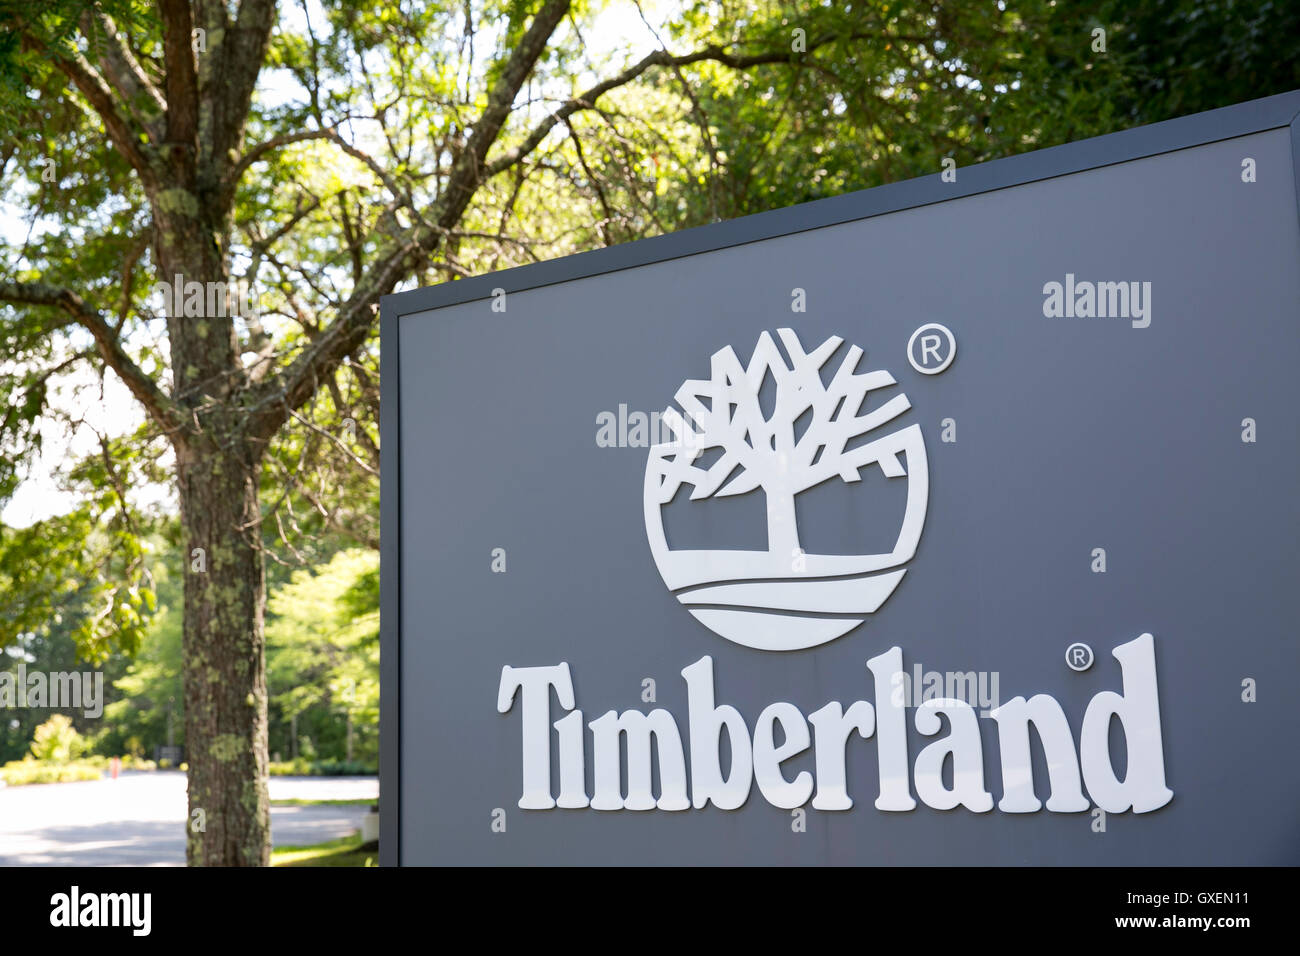 caliente para mi Opiáceo  Timberland Shoes High Resolution Stock Photography and Images - Alamy